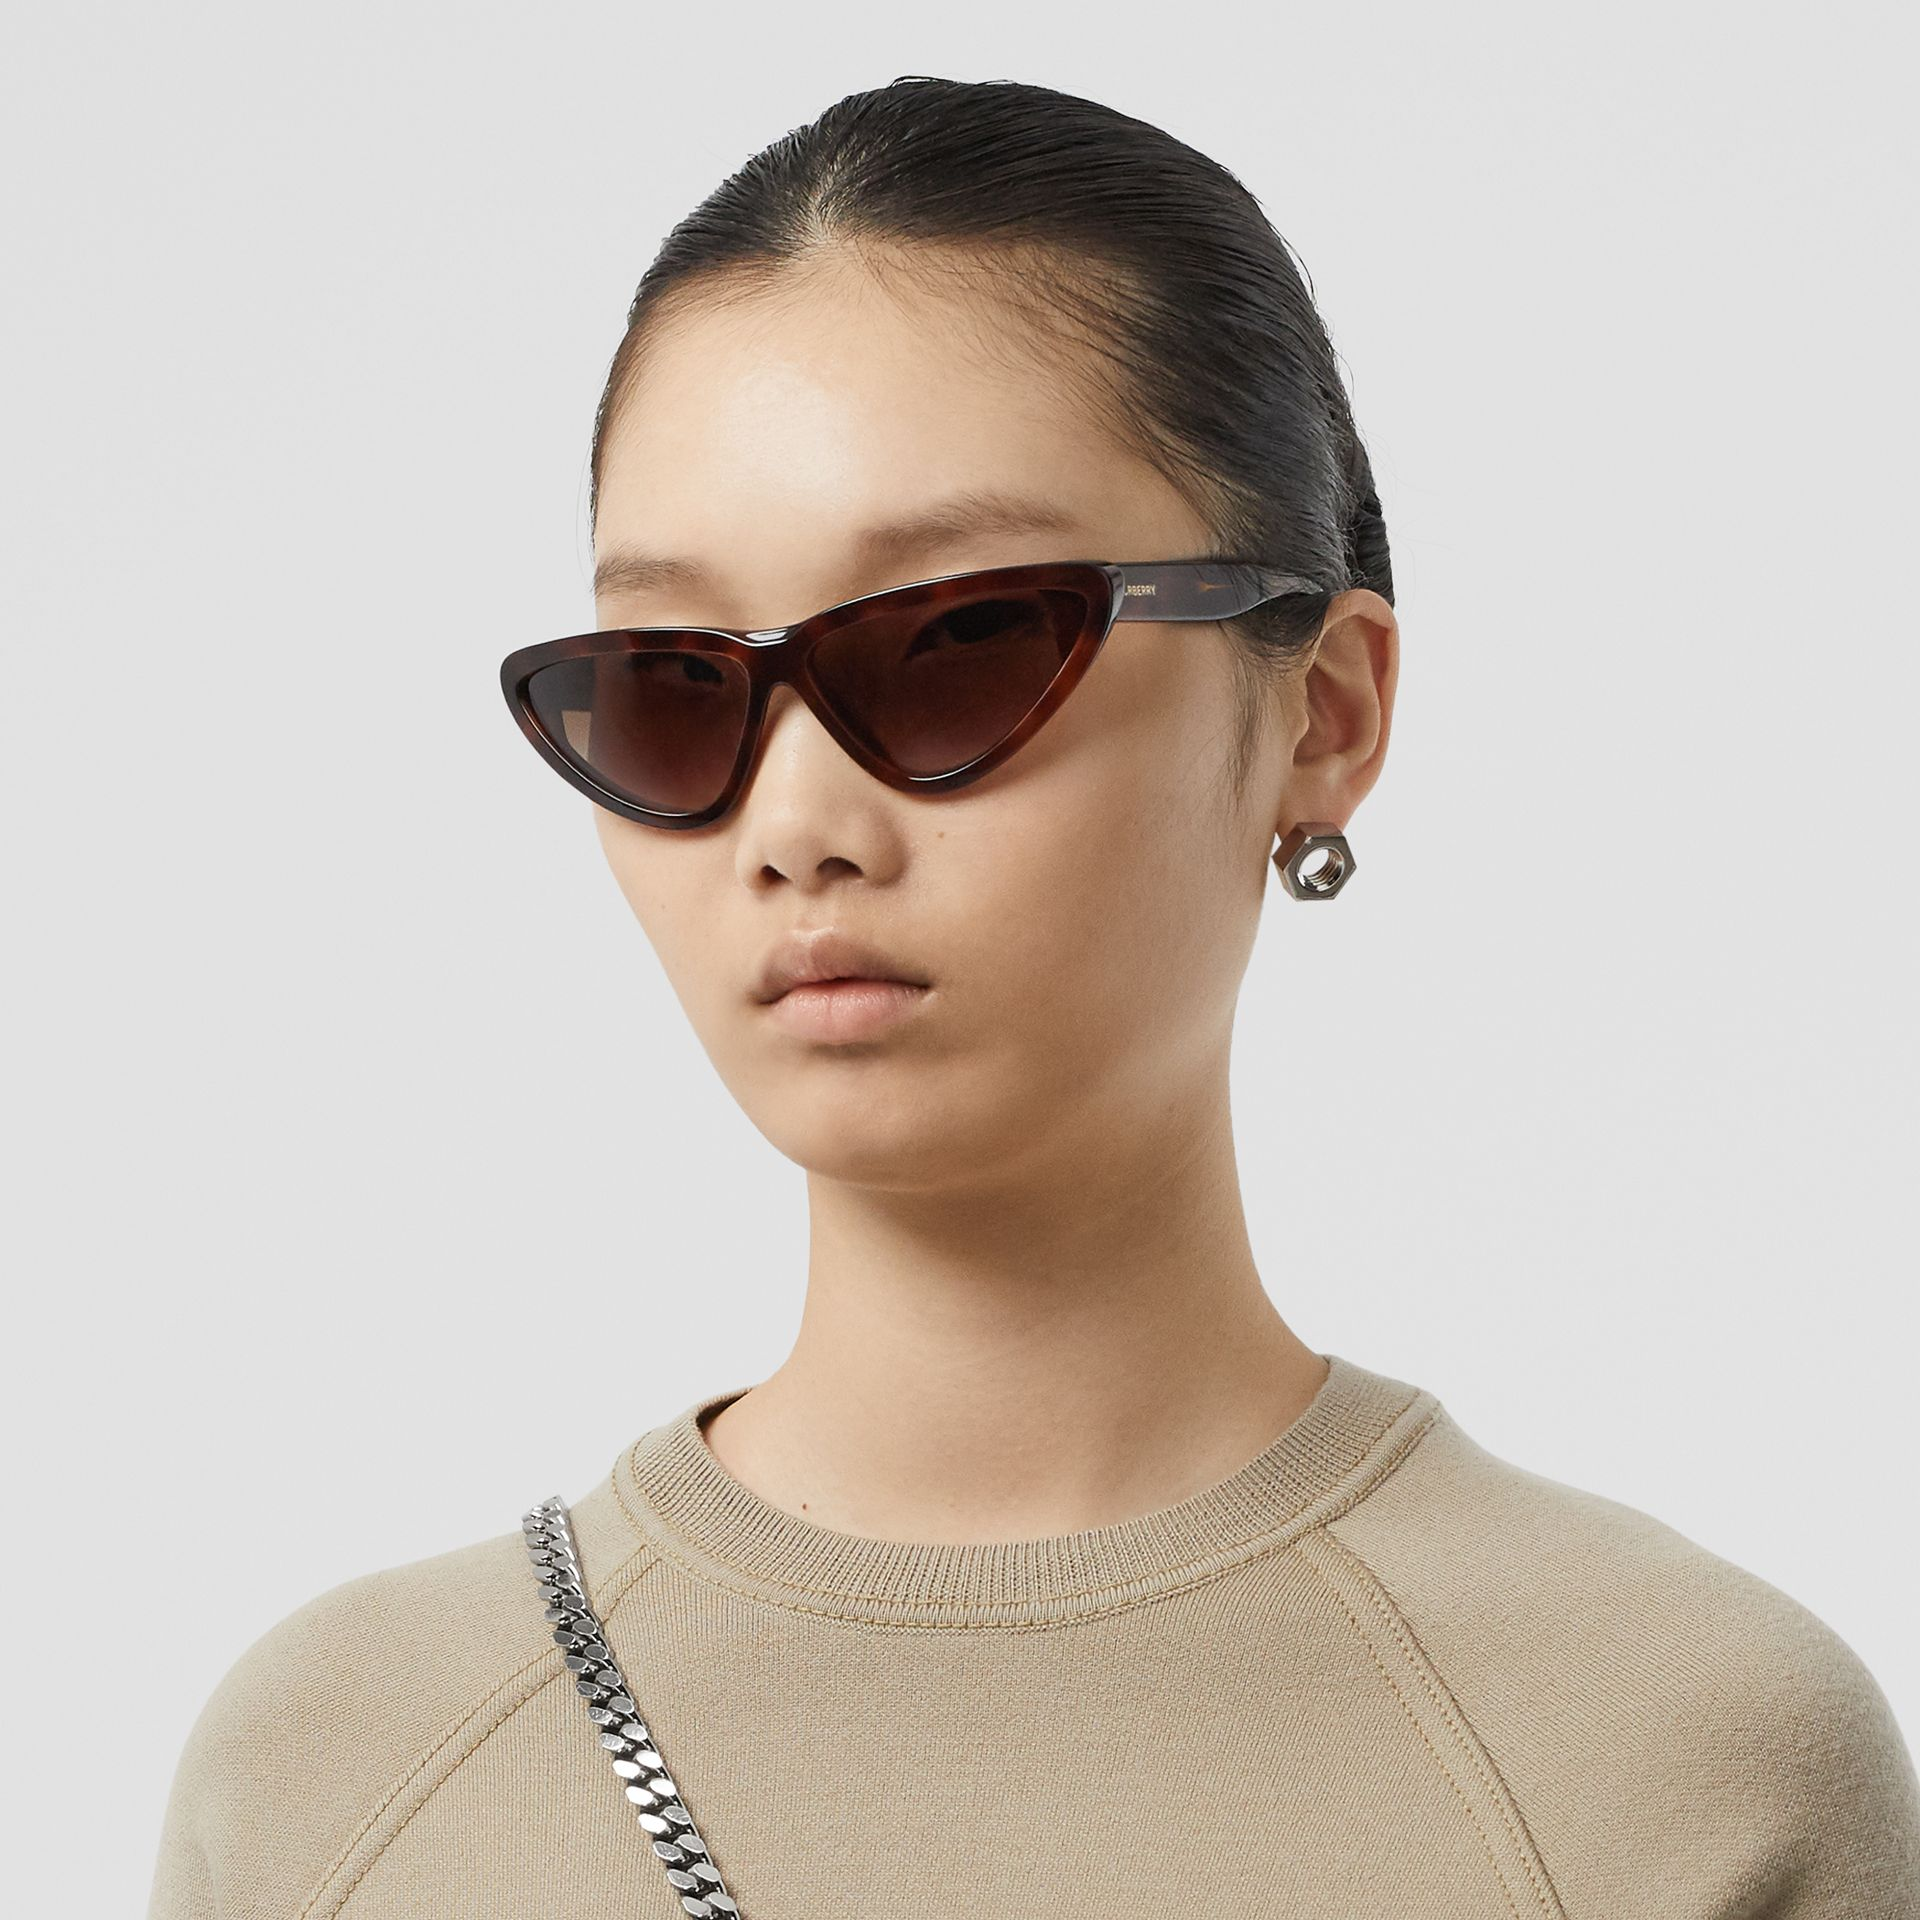 Triangular Frame Sunglasses in Tortoiseshell - Women | Burberry - gallery image 2